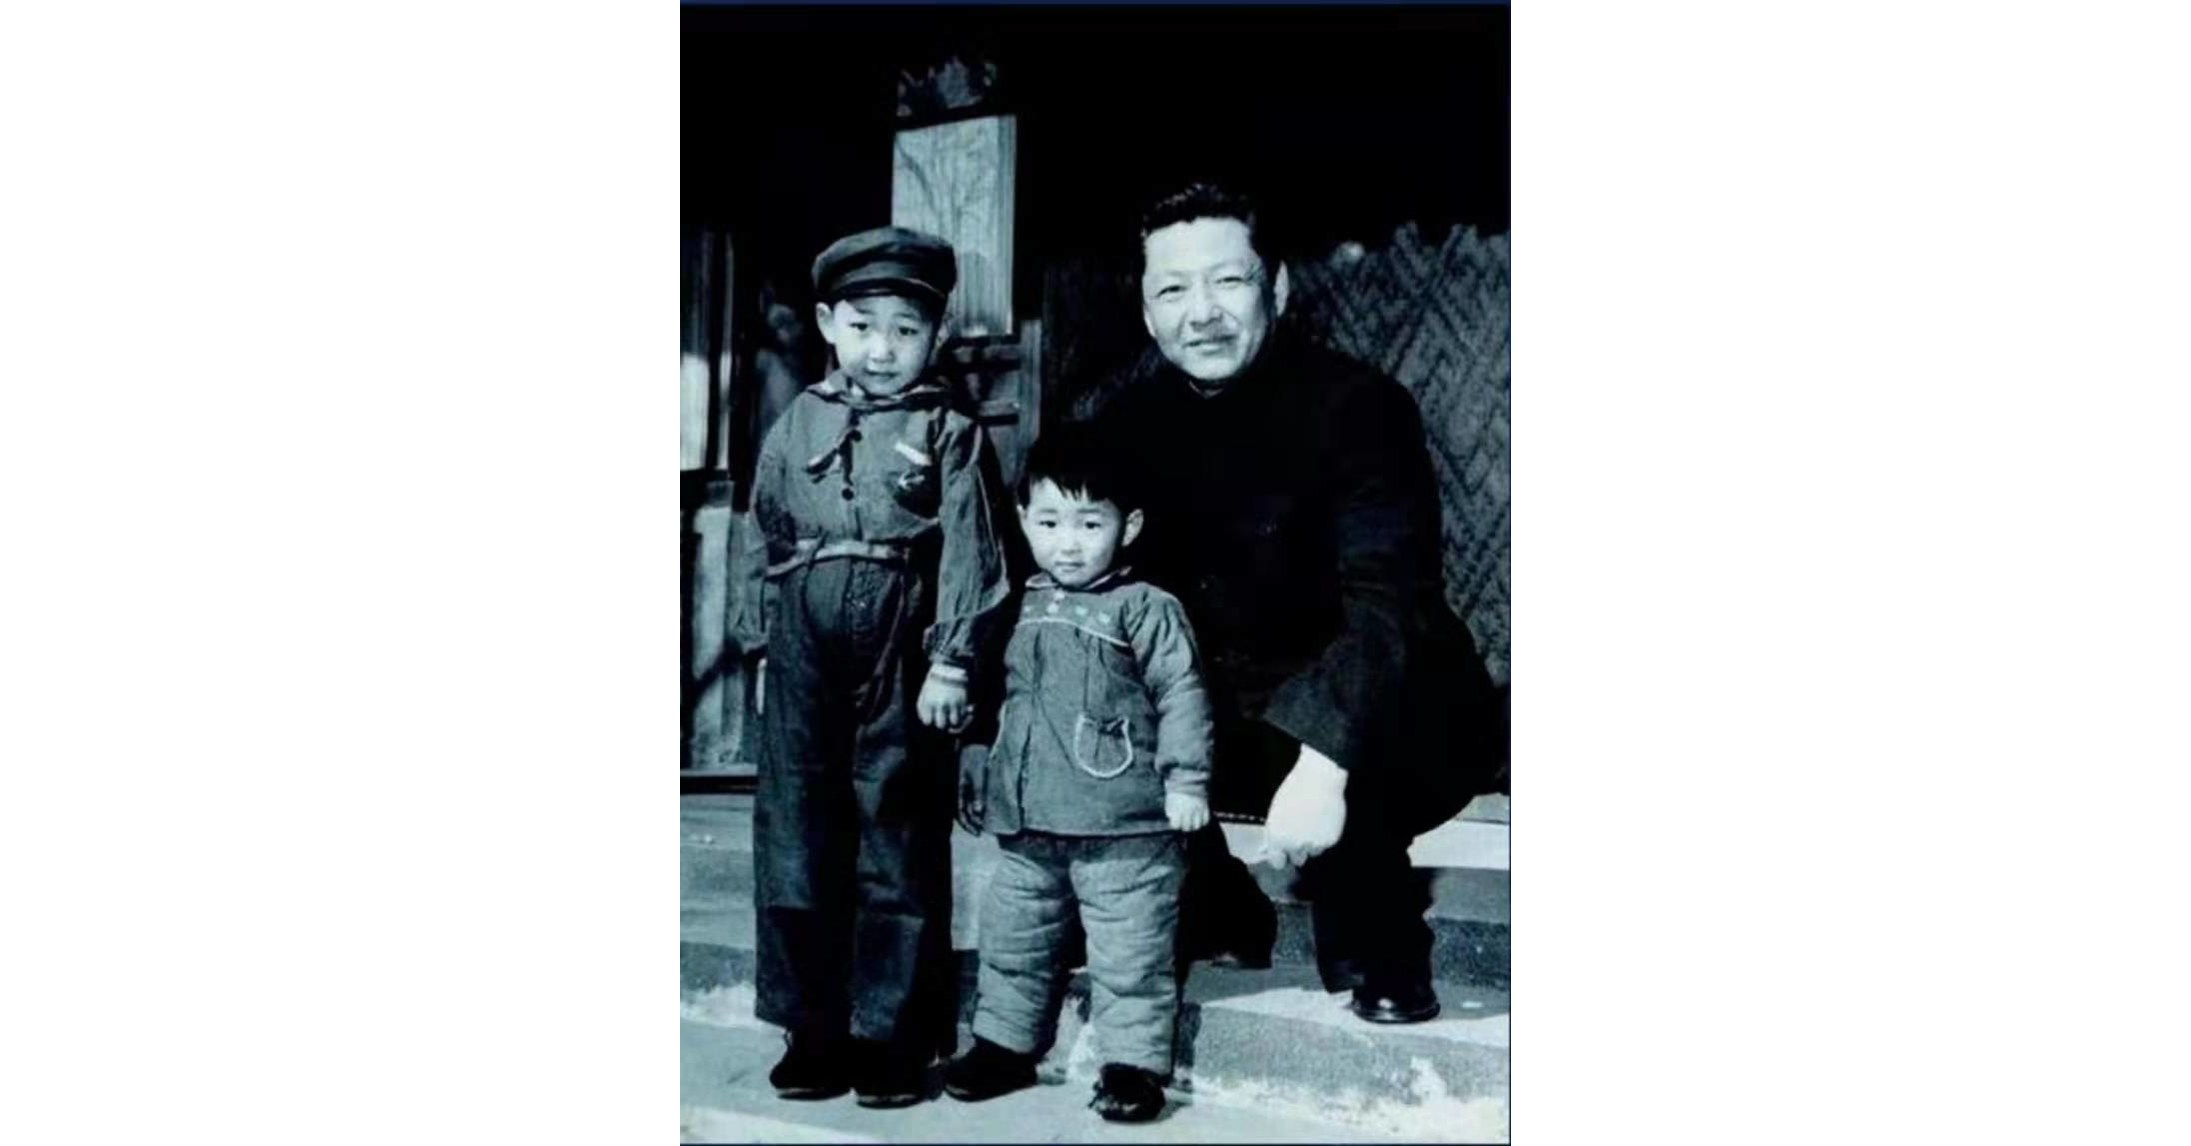 Xi takes father as role model in life, work, governance